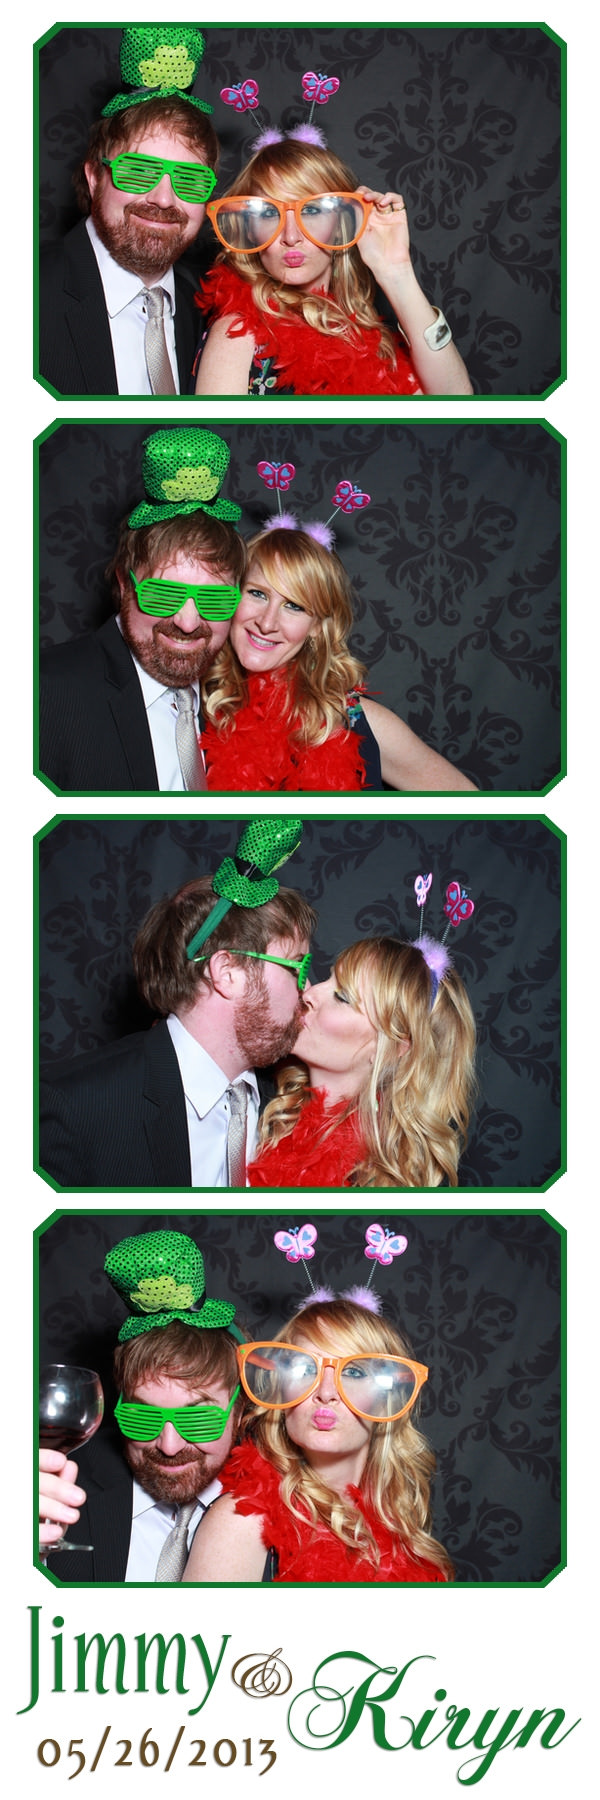 couple-having-fun-in-photobooth-Colorado